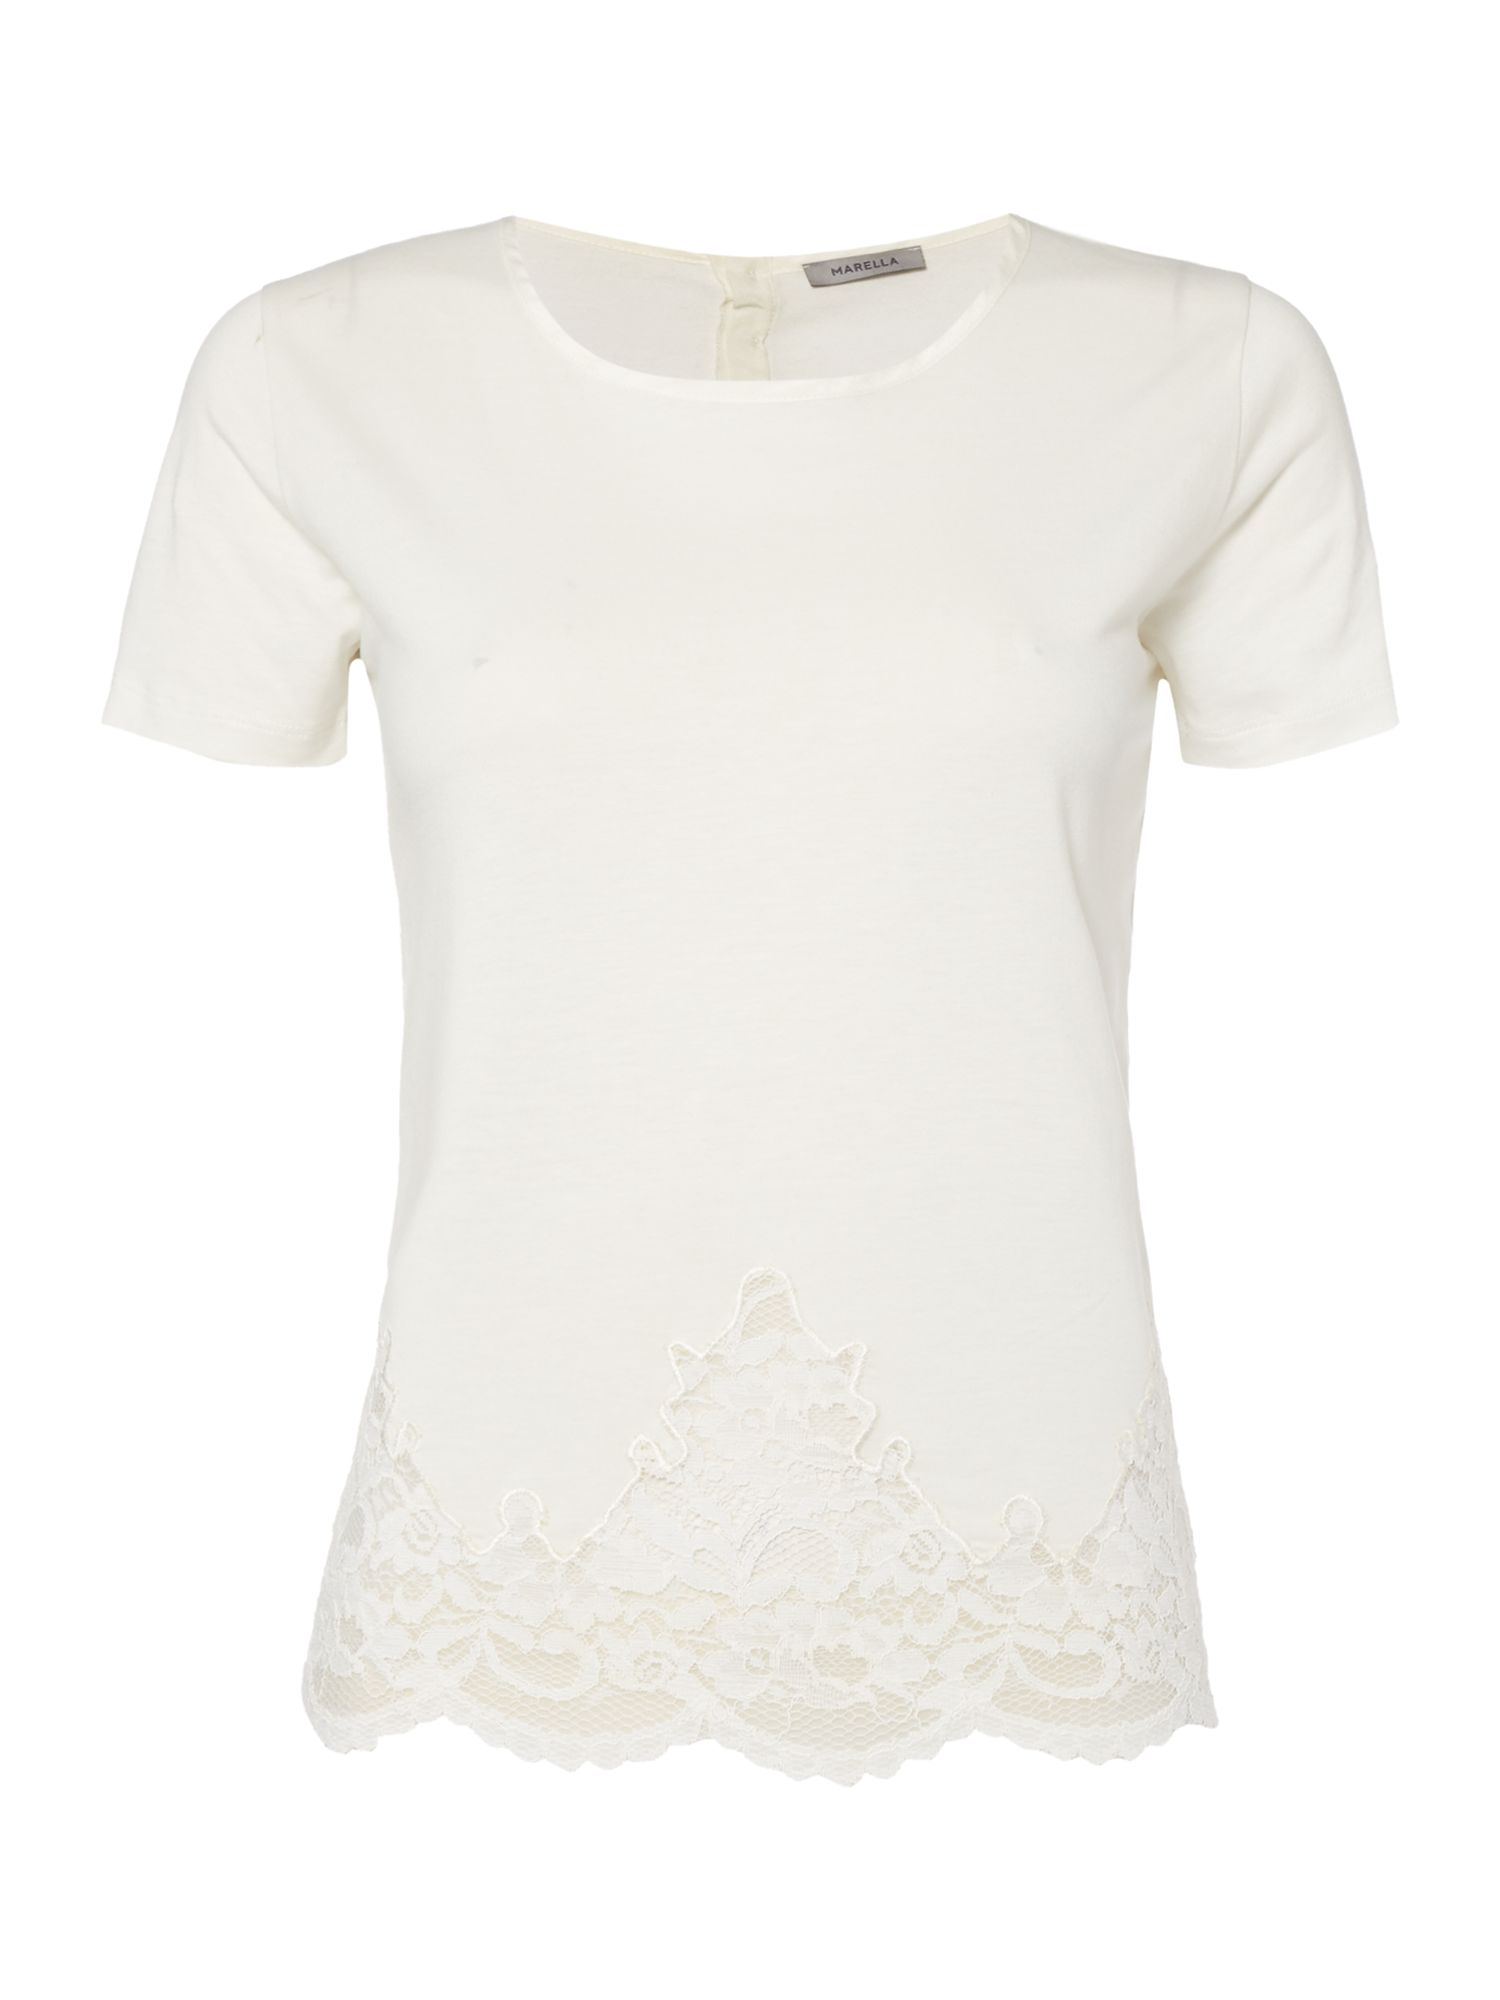 Marella Ocean short sleeve lace detail top, White